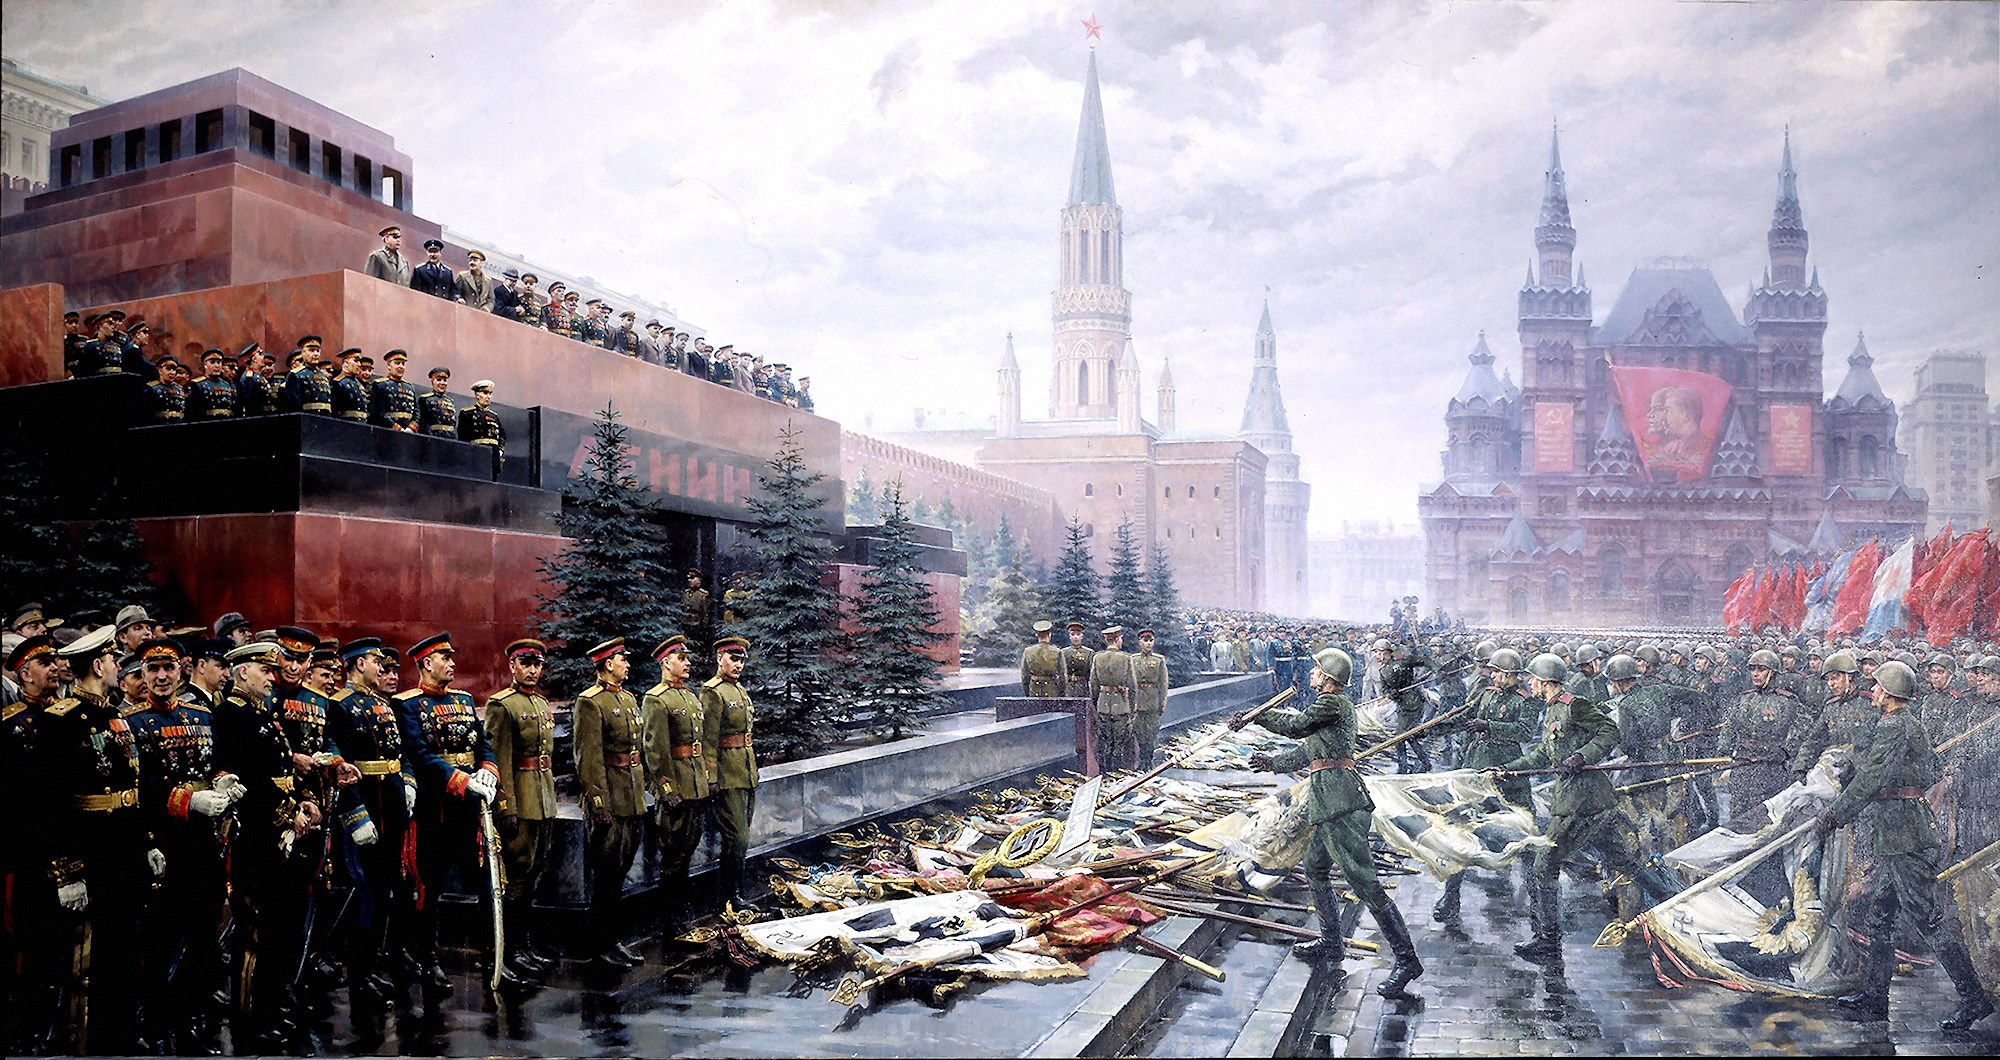 00 Mikhail Khmelko. The Triumph of the Victorious Mother-Motherland. 1949